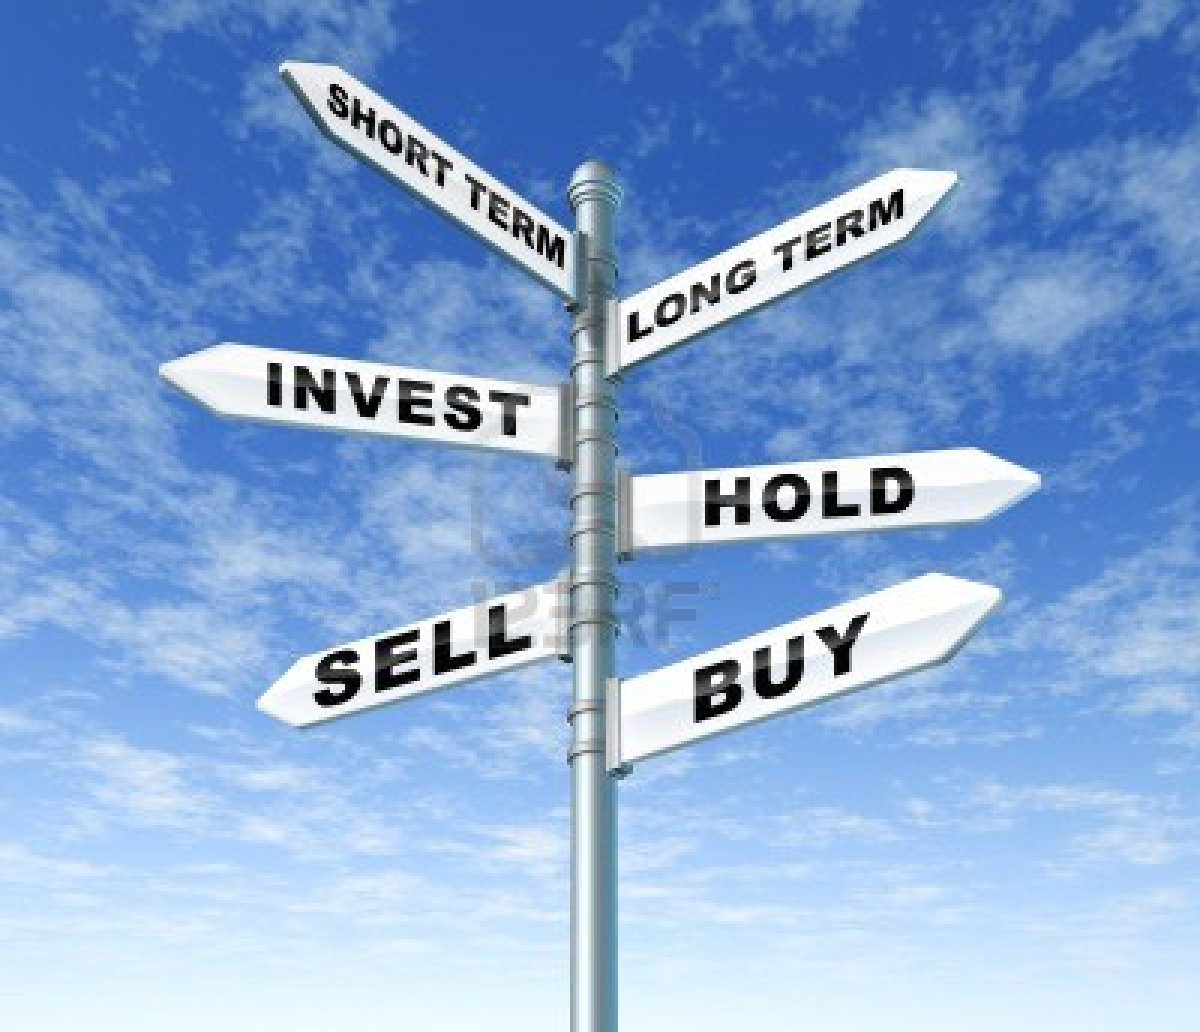 Open a binary options brokerage for 12-20 000